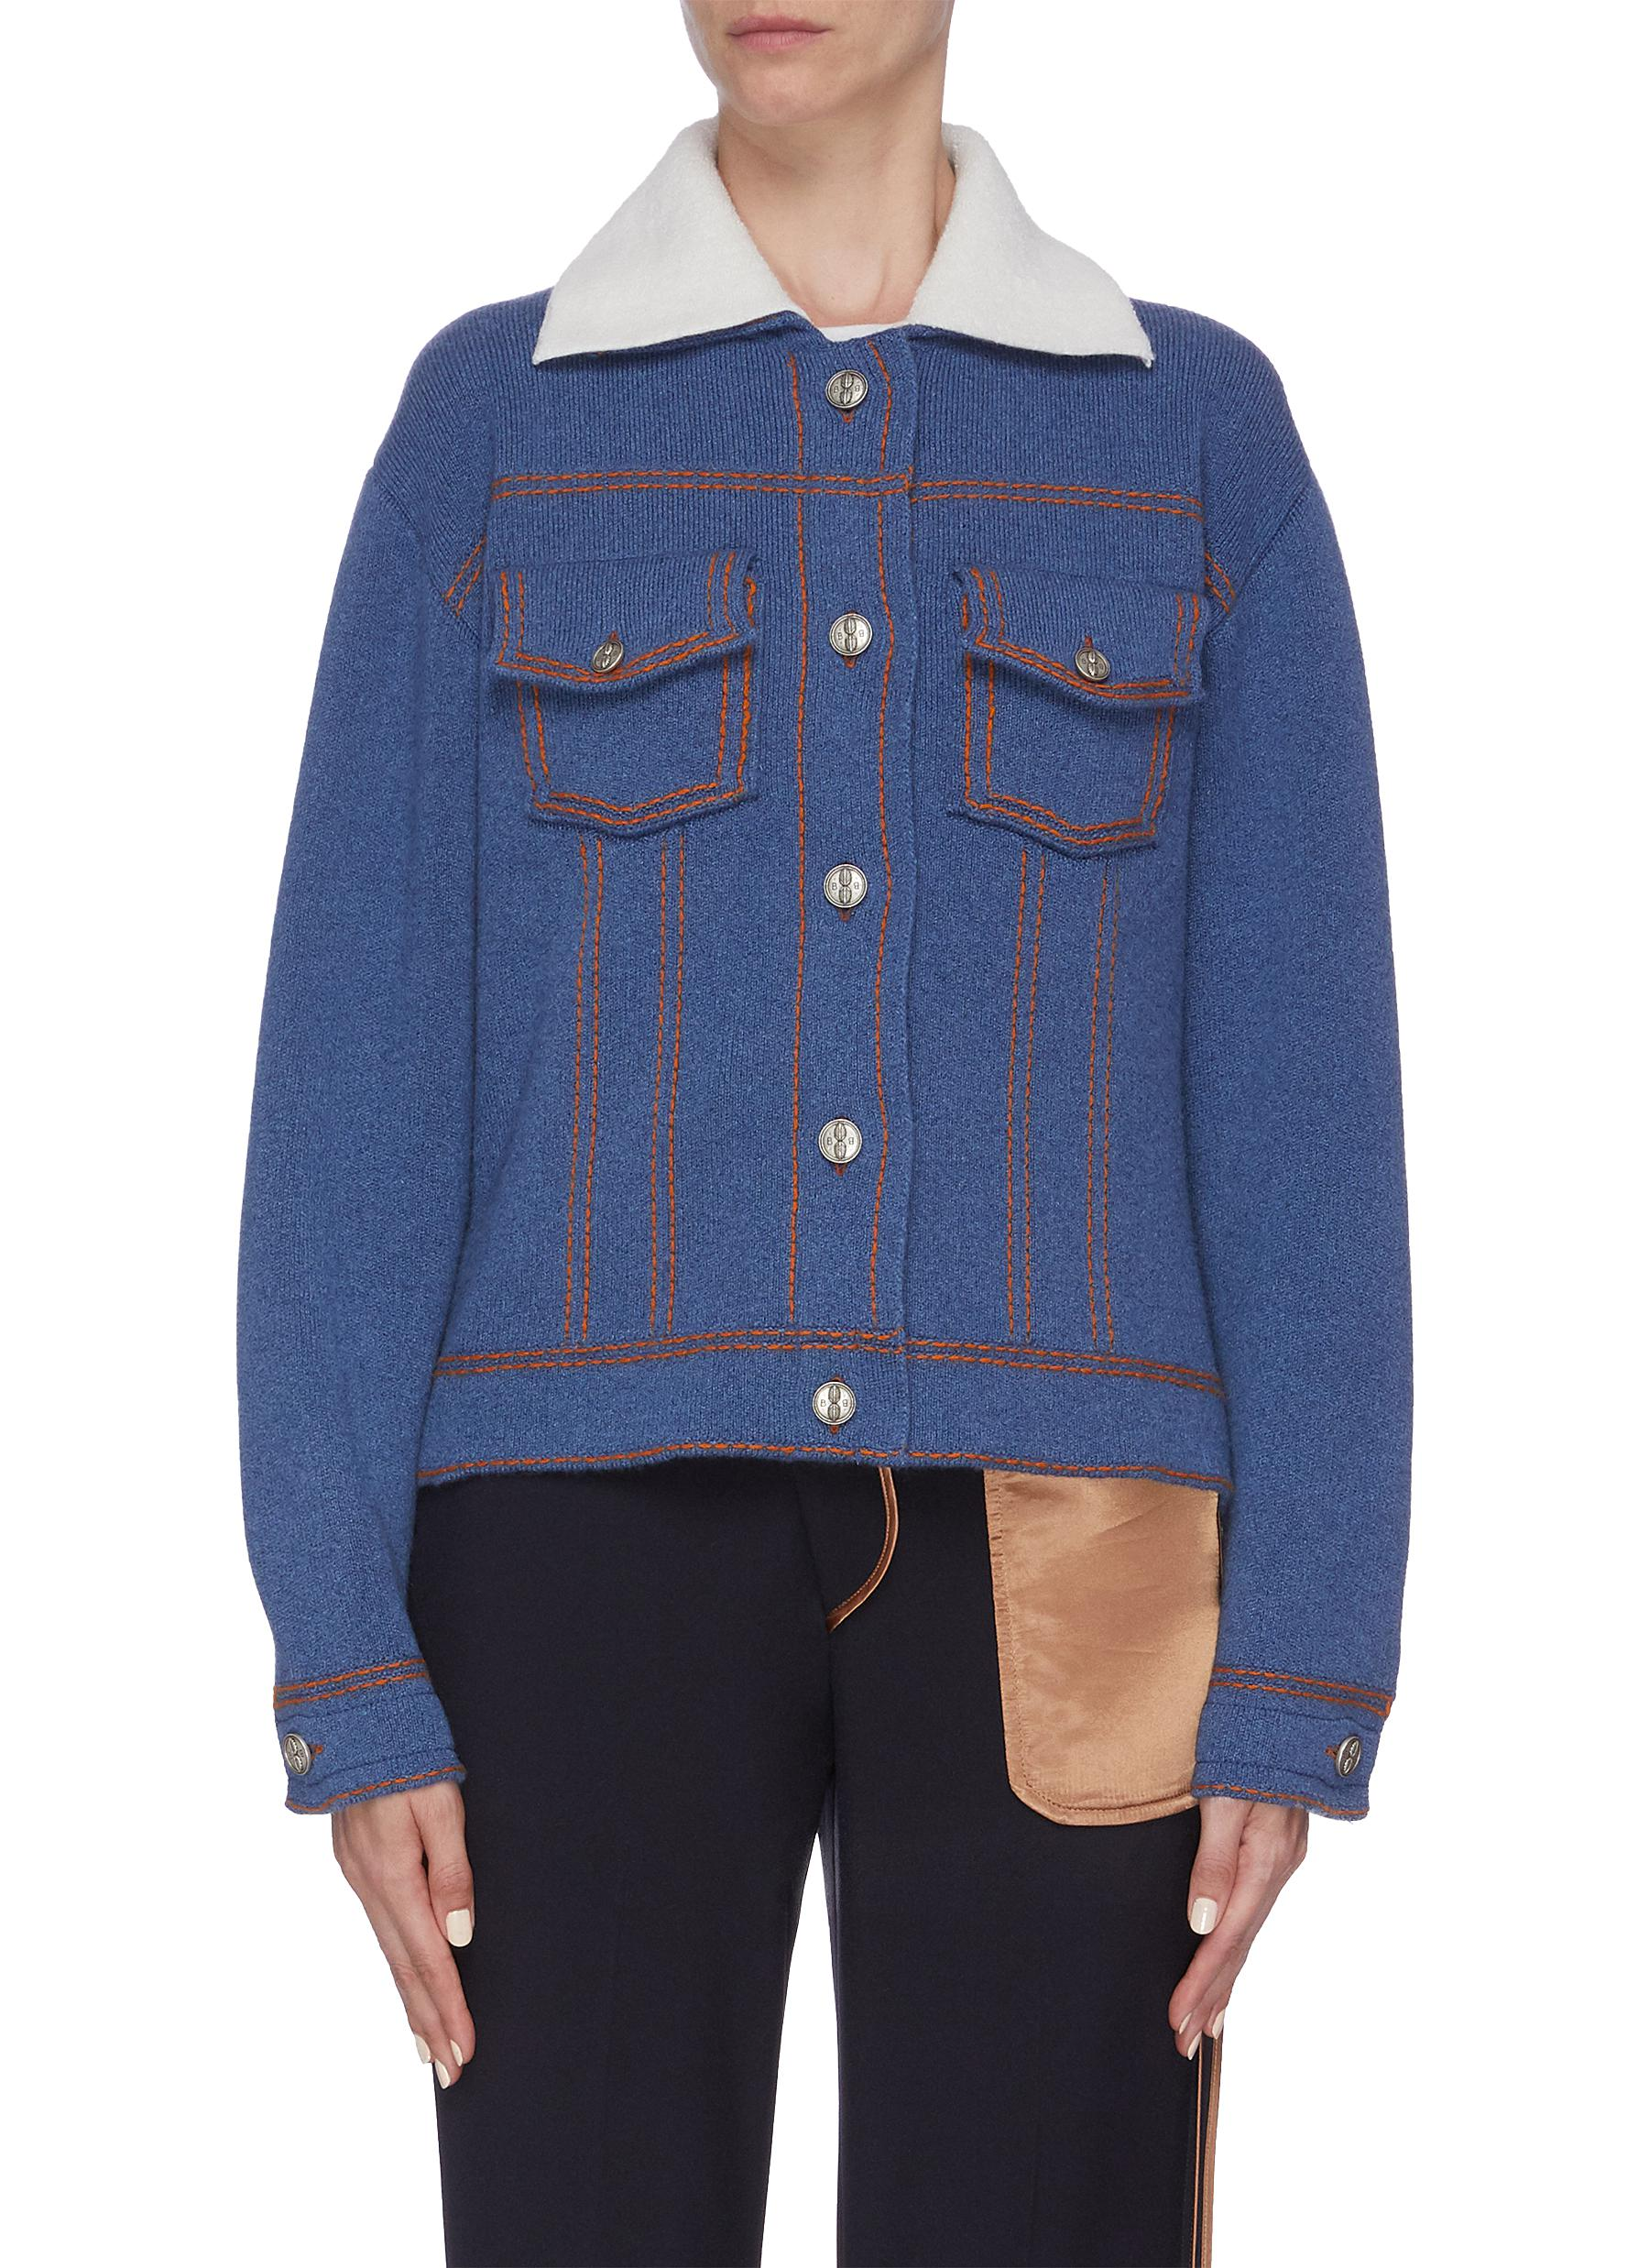 Colourblock collar cashmere-cotton knit jacket by Barrie